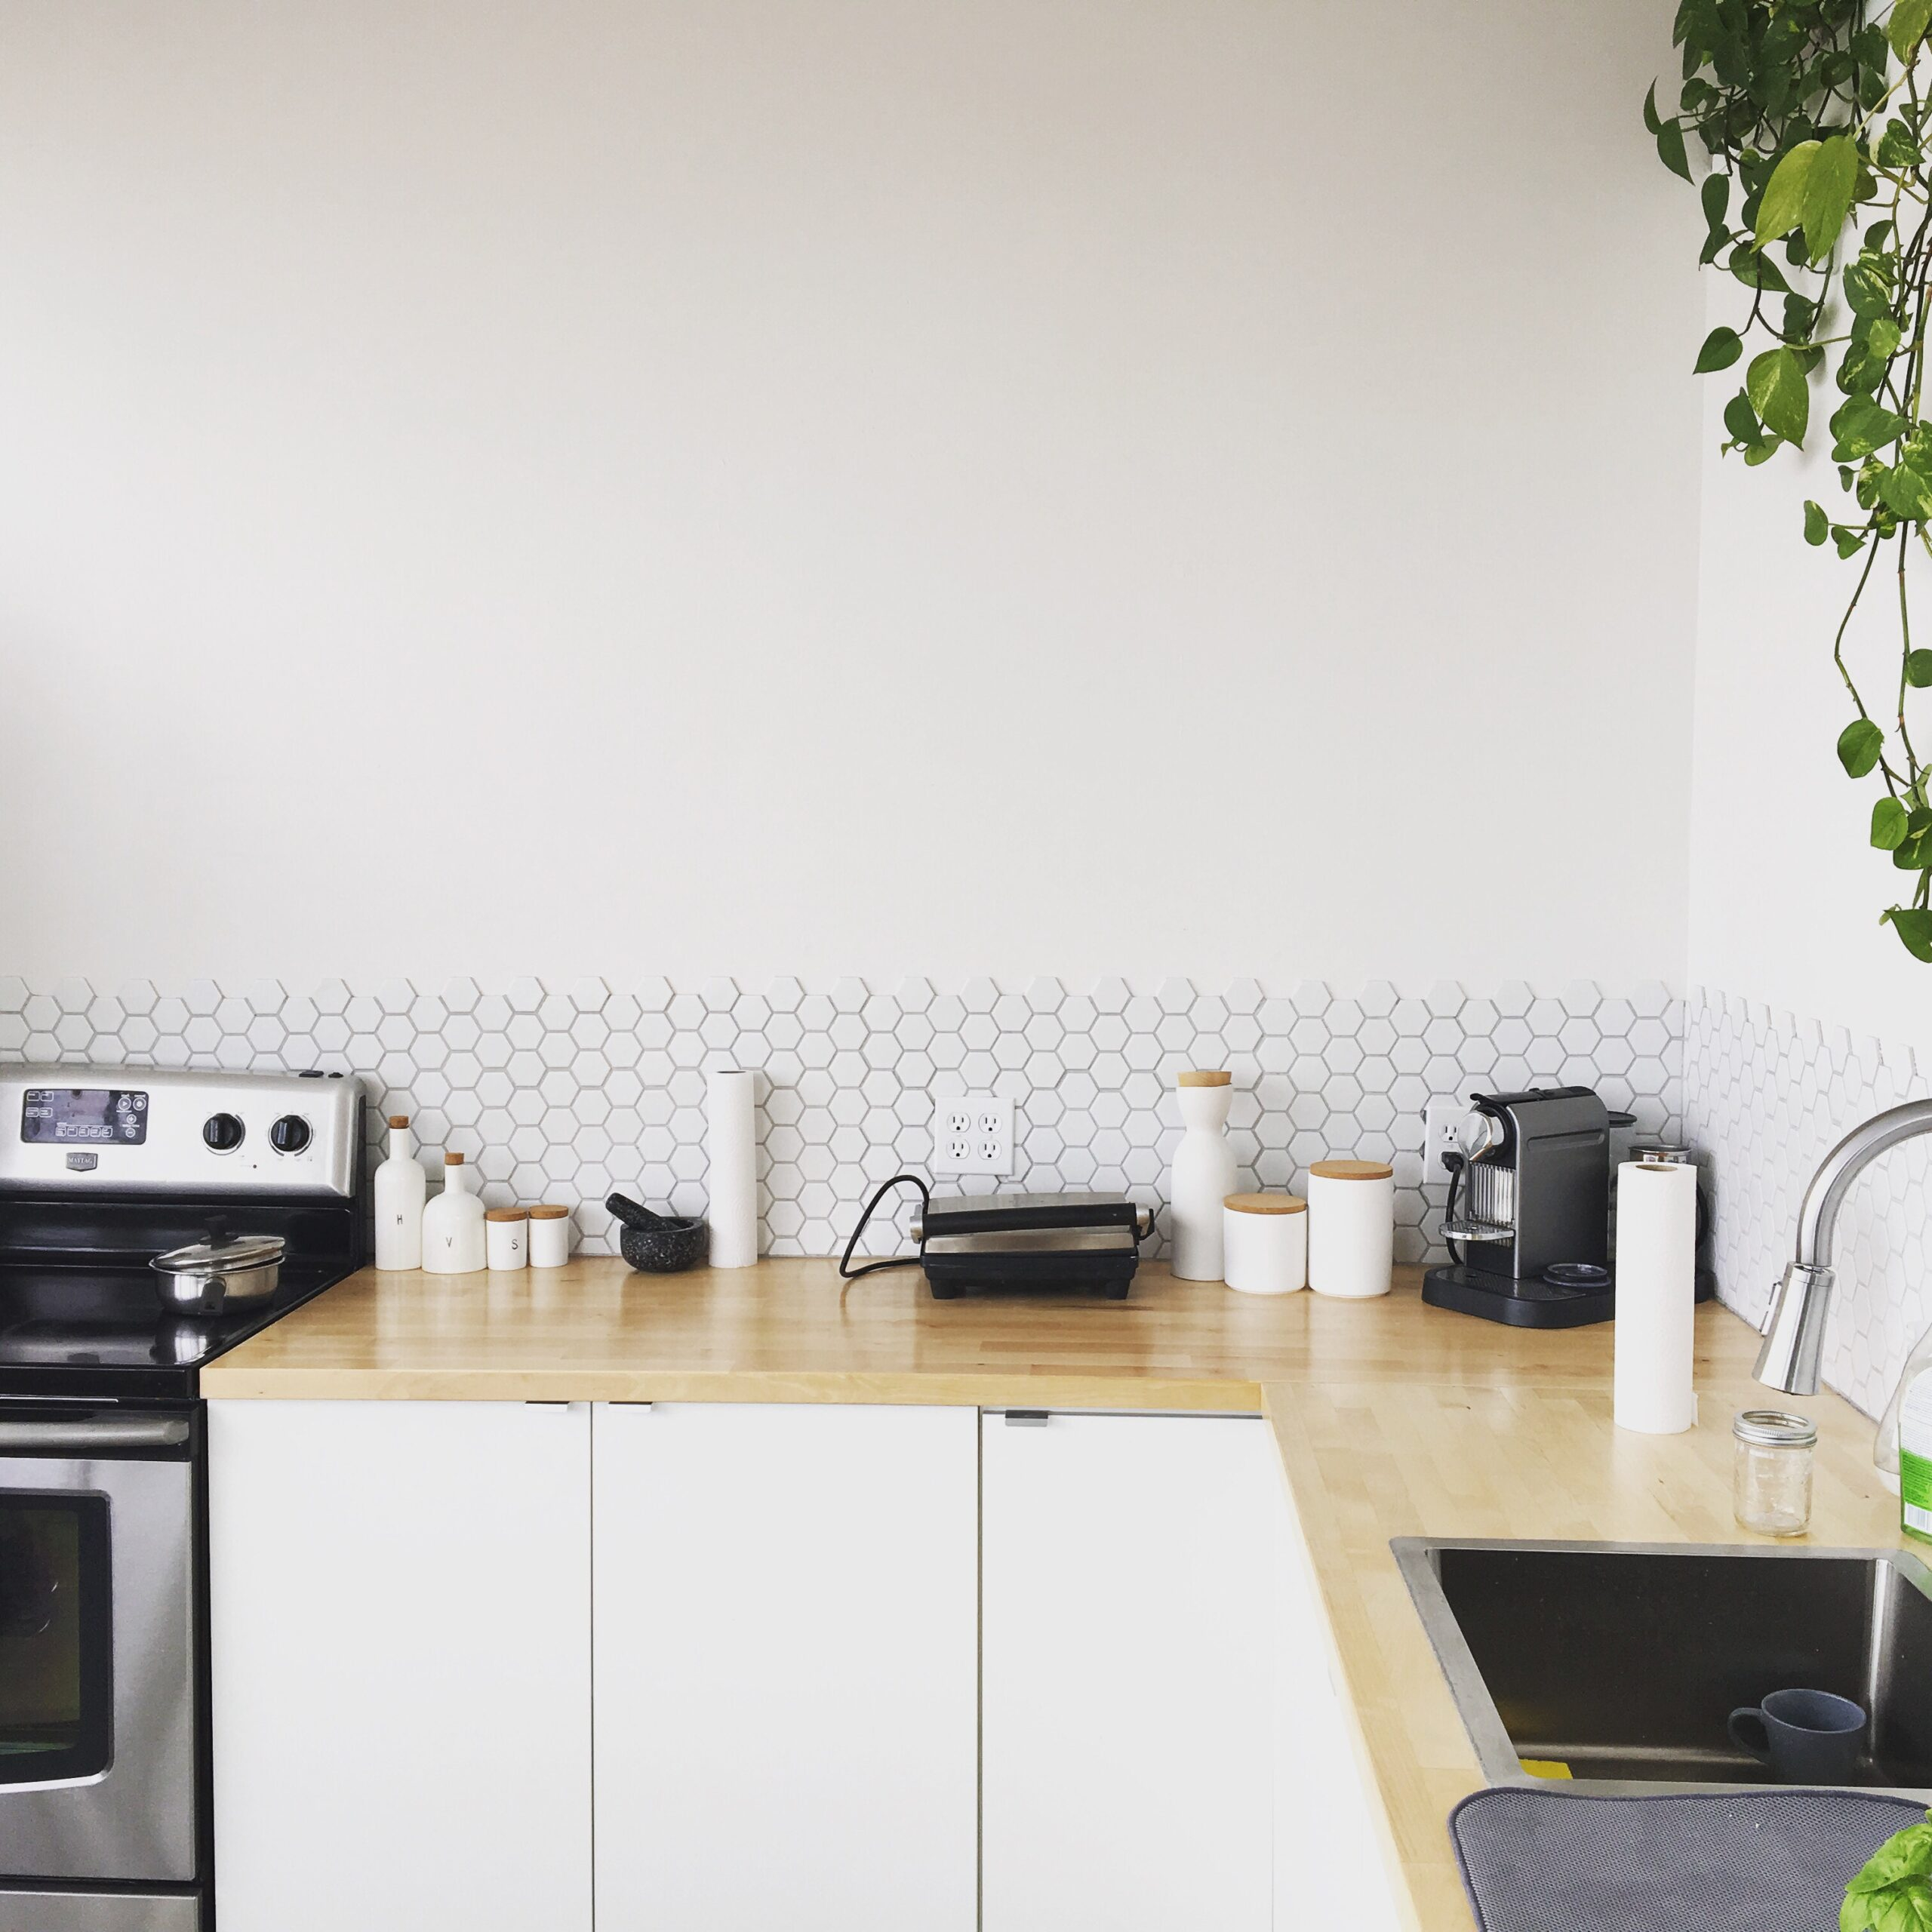 Clean T.O: The 4 Times Cleaning Services are Essential - Maid in Toronto